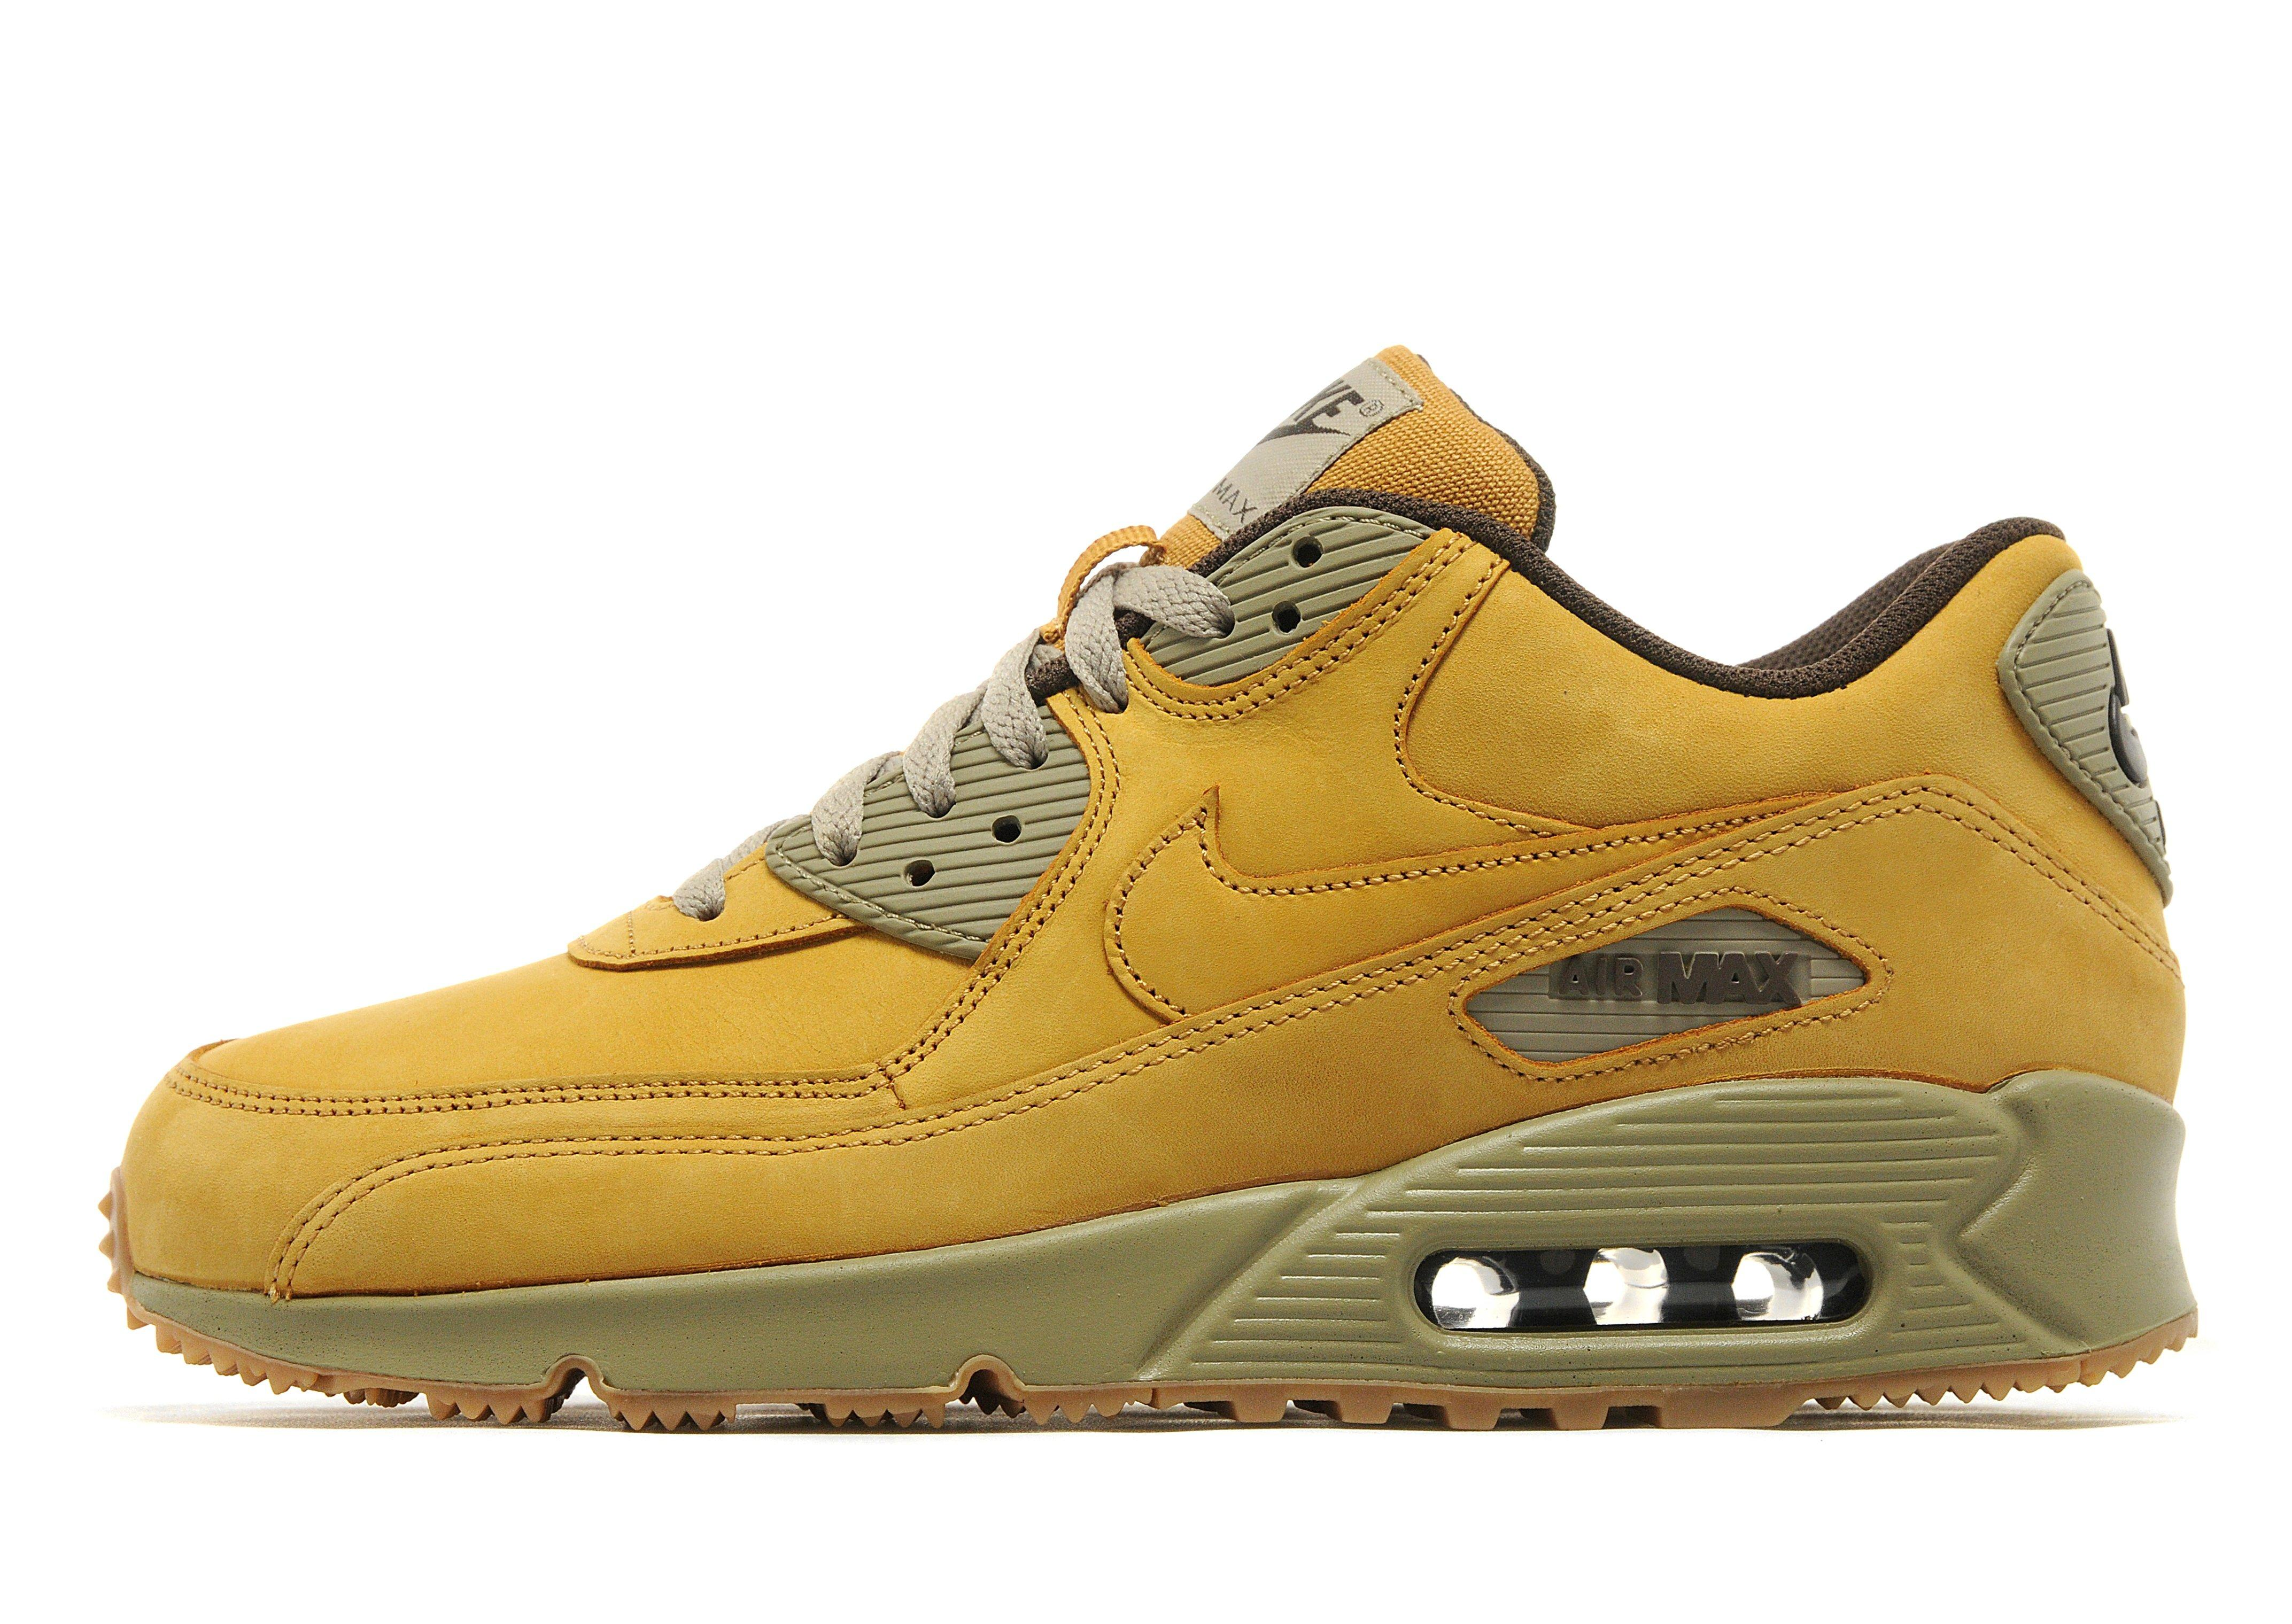 footlocker sortie remise Nike Air Max 90 Hommes Timberland Rouge vente énorme surprise skkgYQq